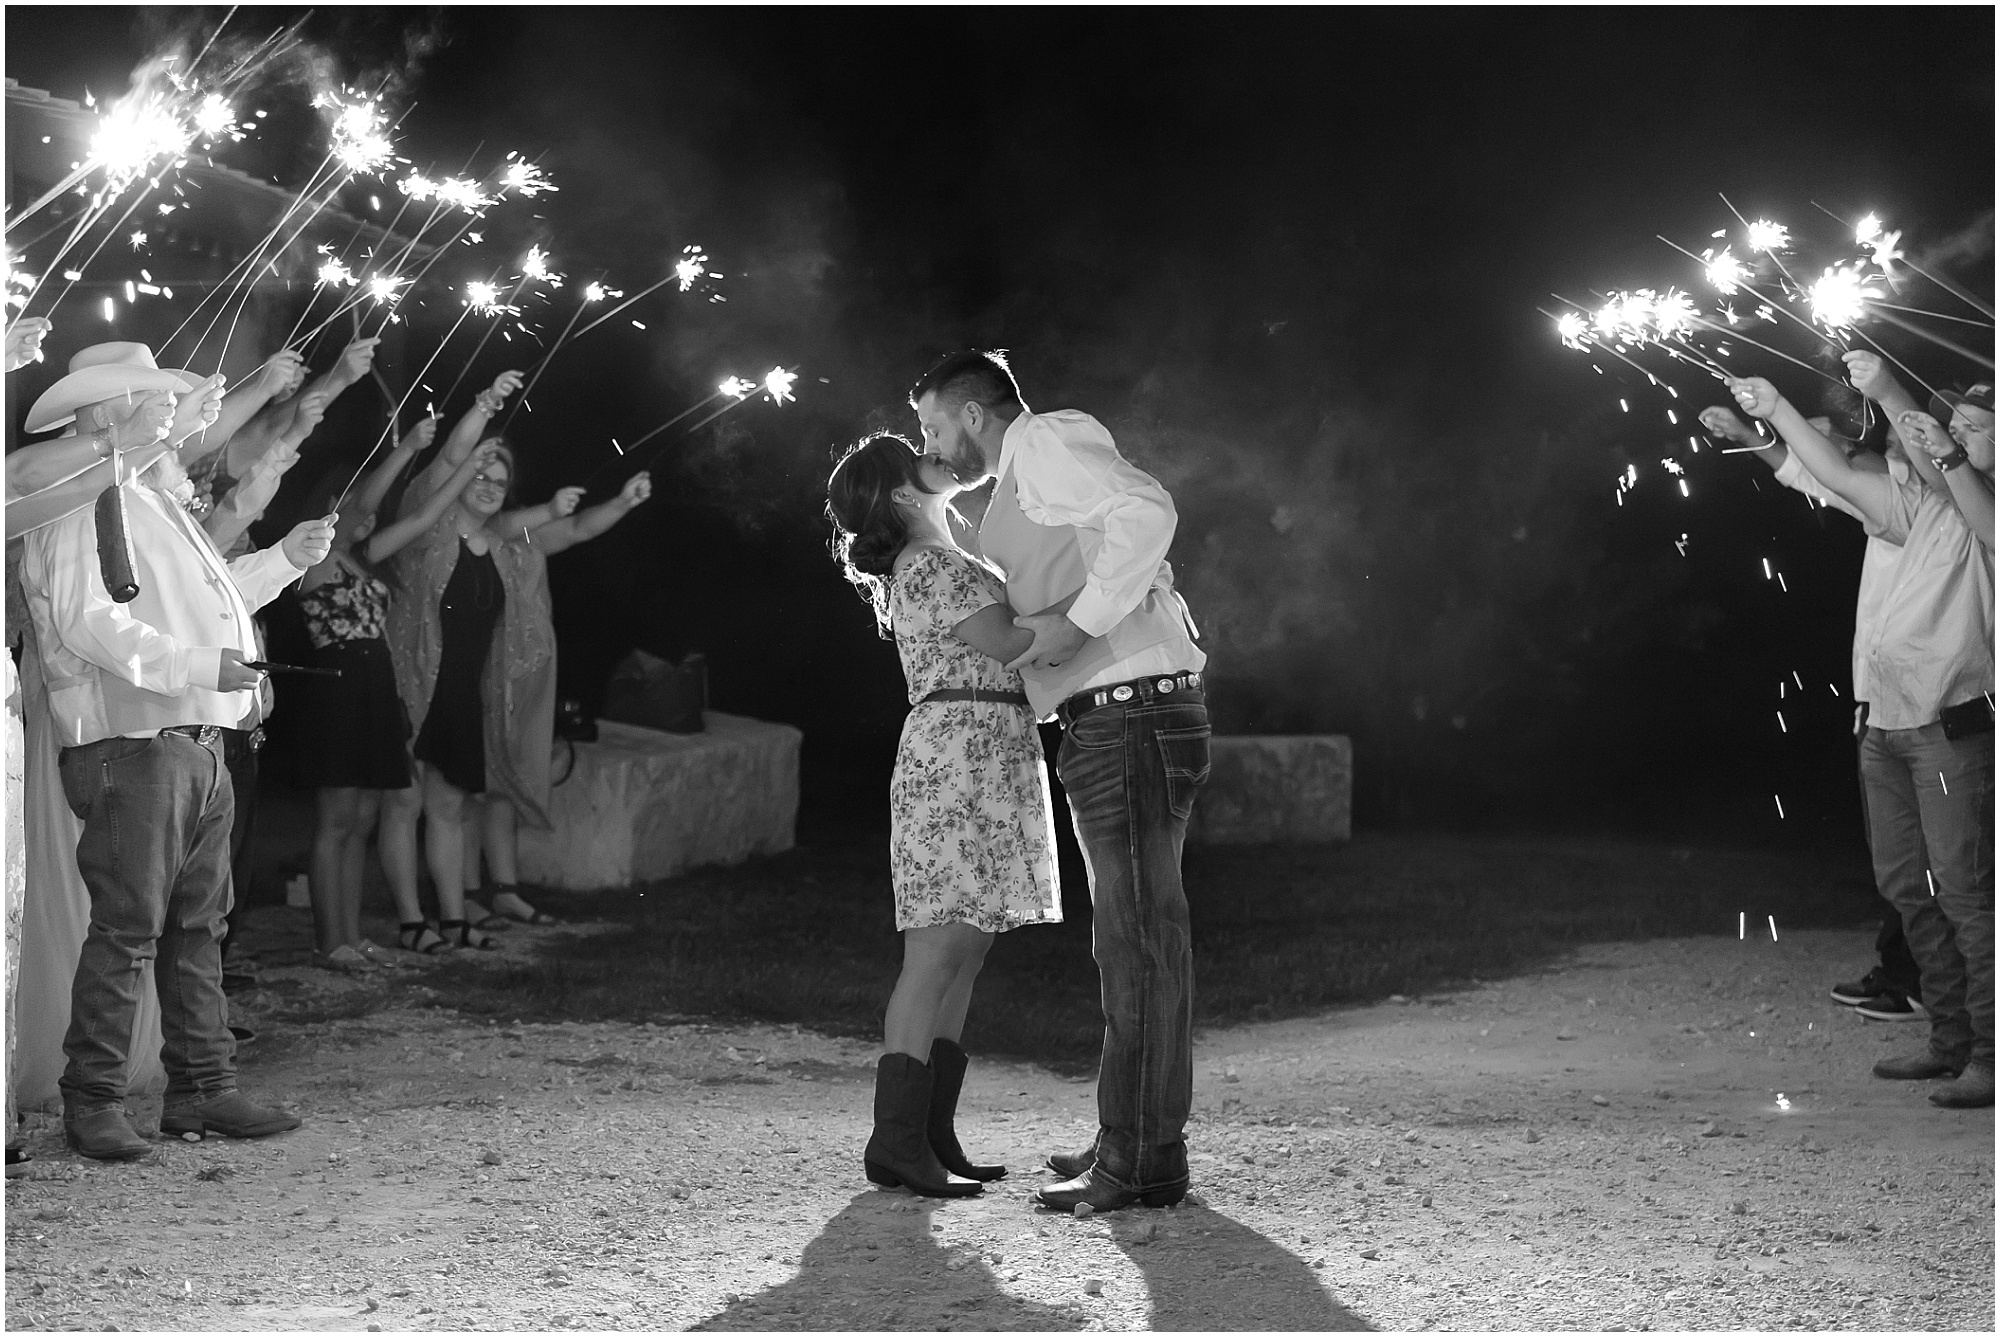 A bride and groom kiss surrounded by their guests with sparklers, black and white image - Rustic wedding at Rustic Acres in Belton, Texas - Jason & Melaina Photography - www.jasonandmelaina.com